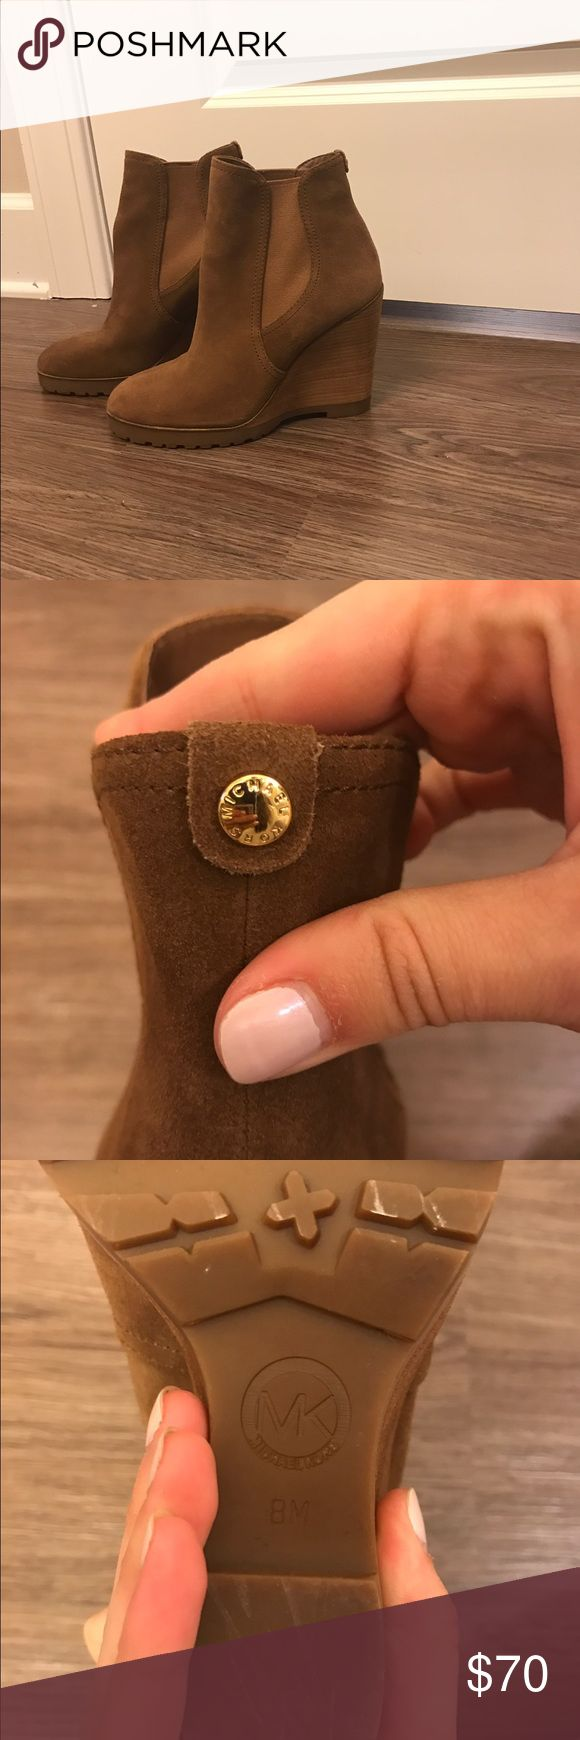 Michael Kors Thea Suede Wedge Ankle Boots Michael Kors Thea Dark Caramel Suede Wedge Ankle Boots Michael Kors Shoes Ankle Boots & Booties